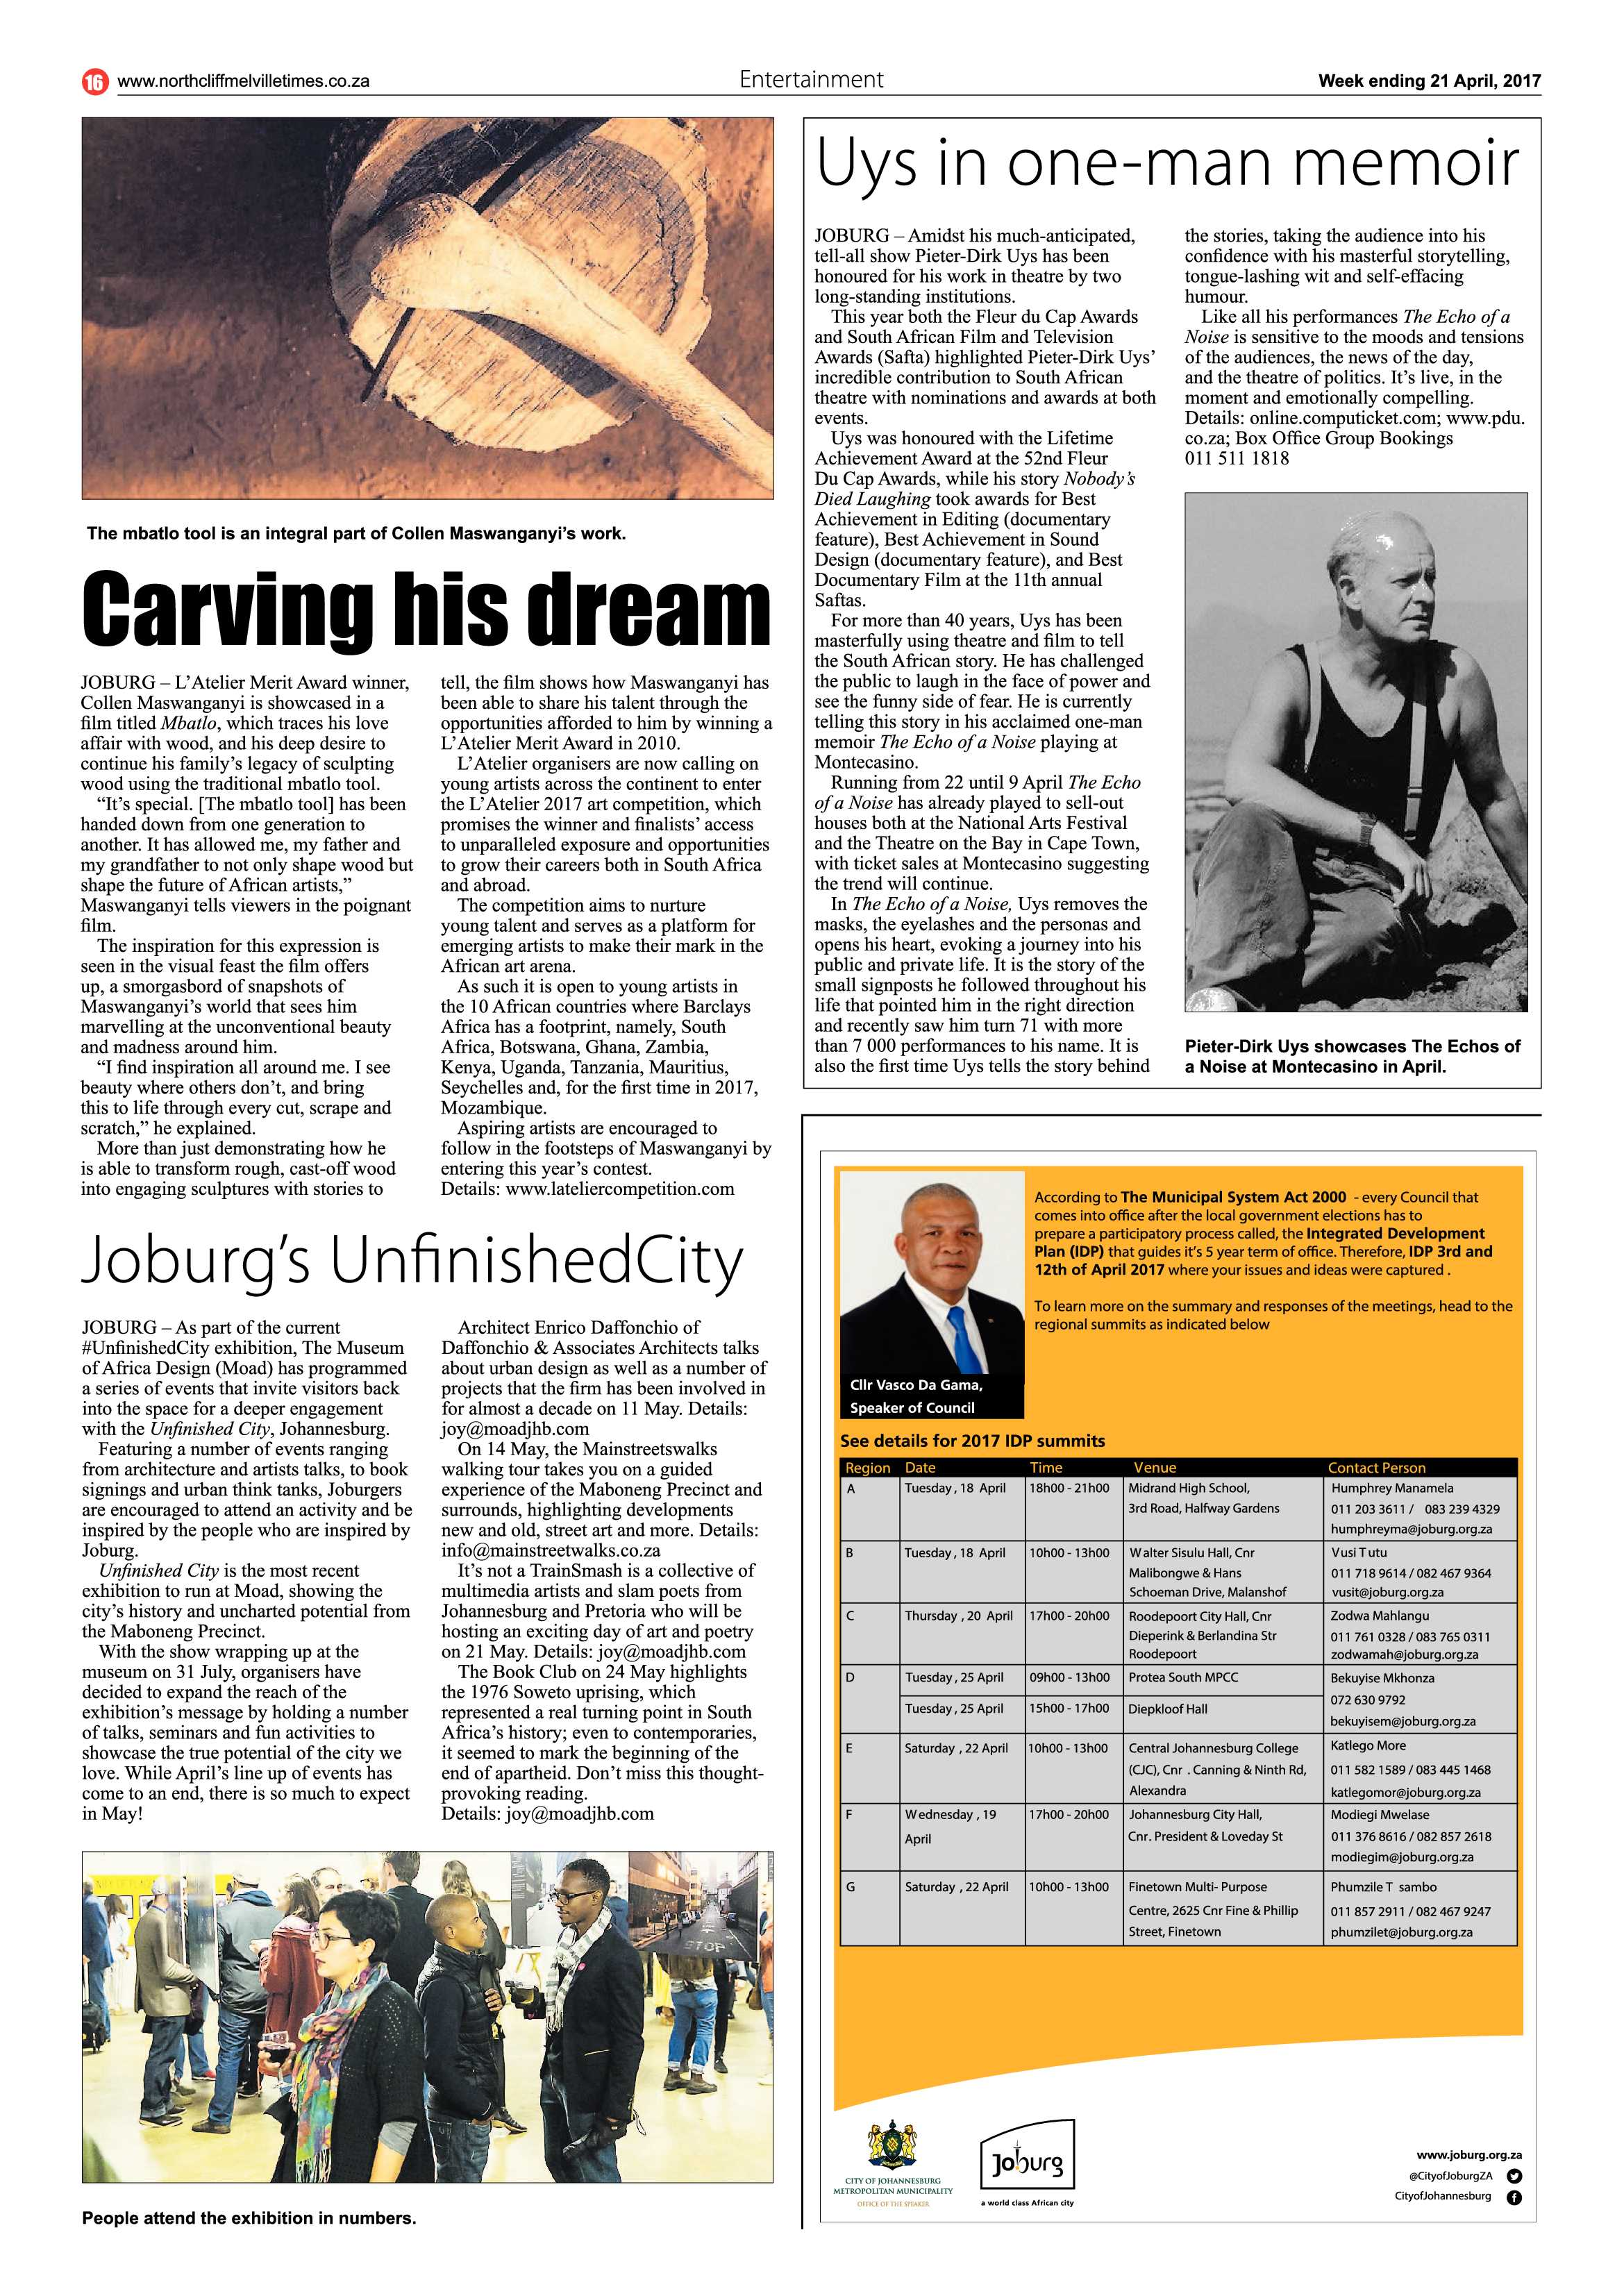 northcliff-melville-times-21-april-2017-epapers-page-16